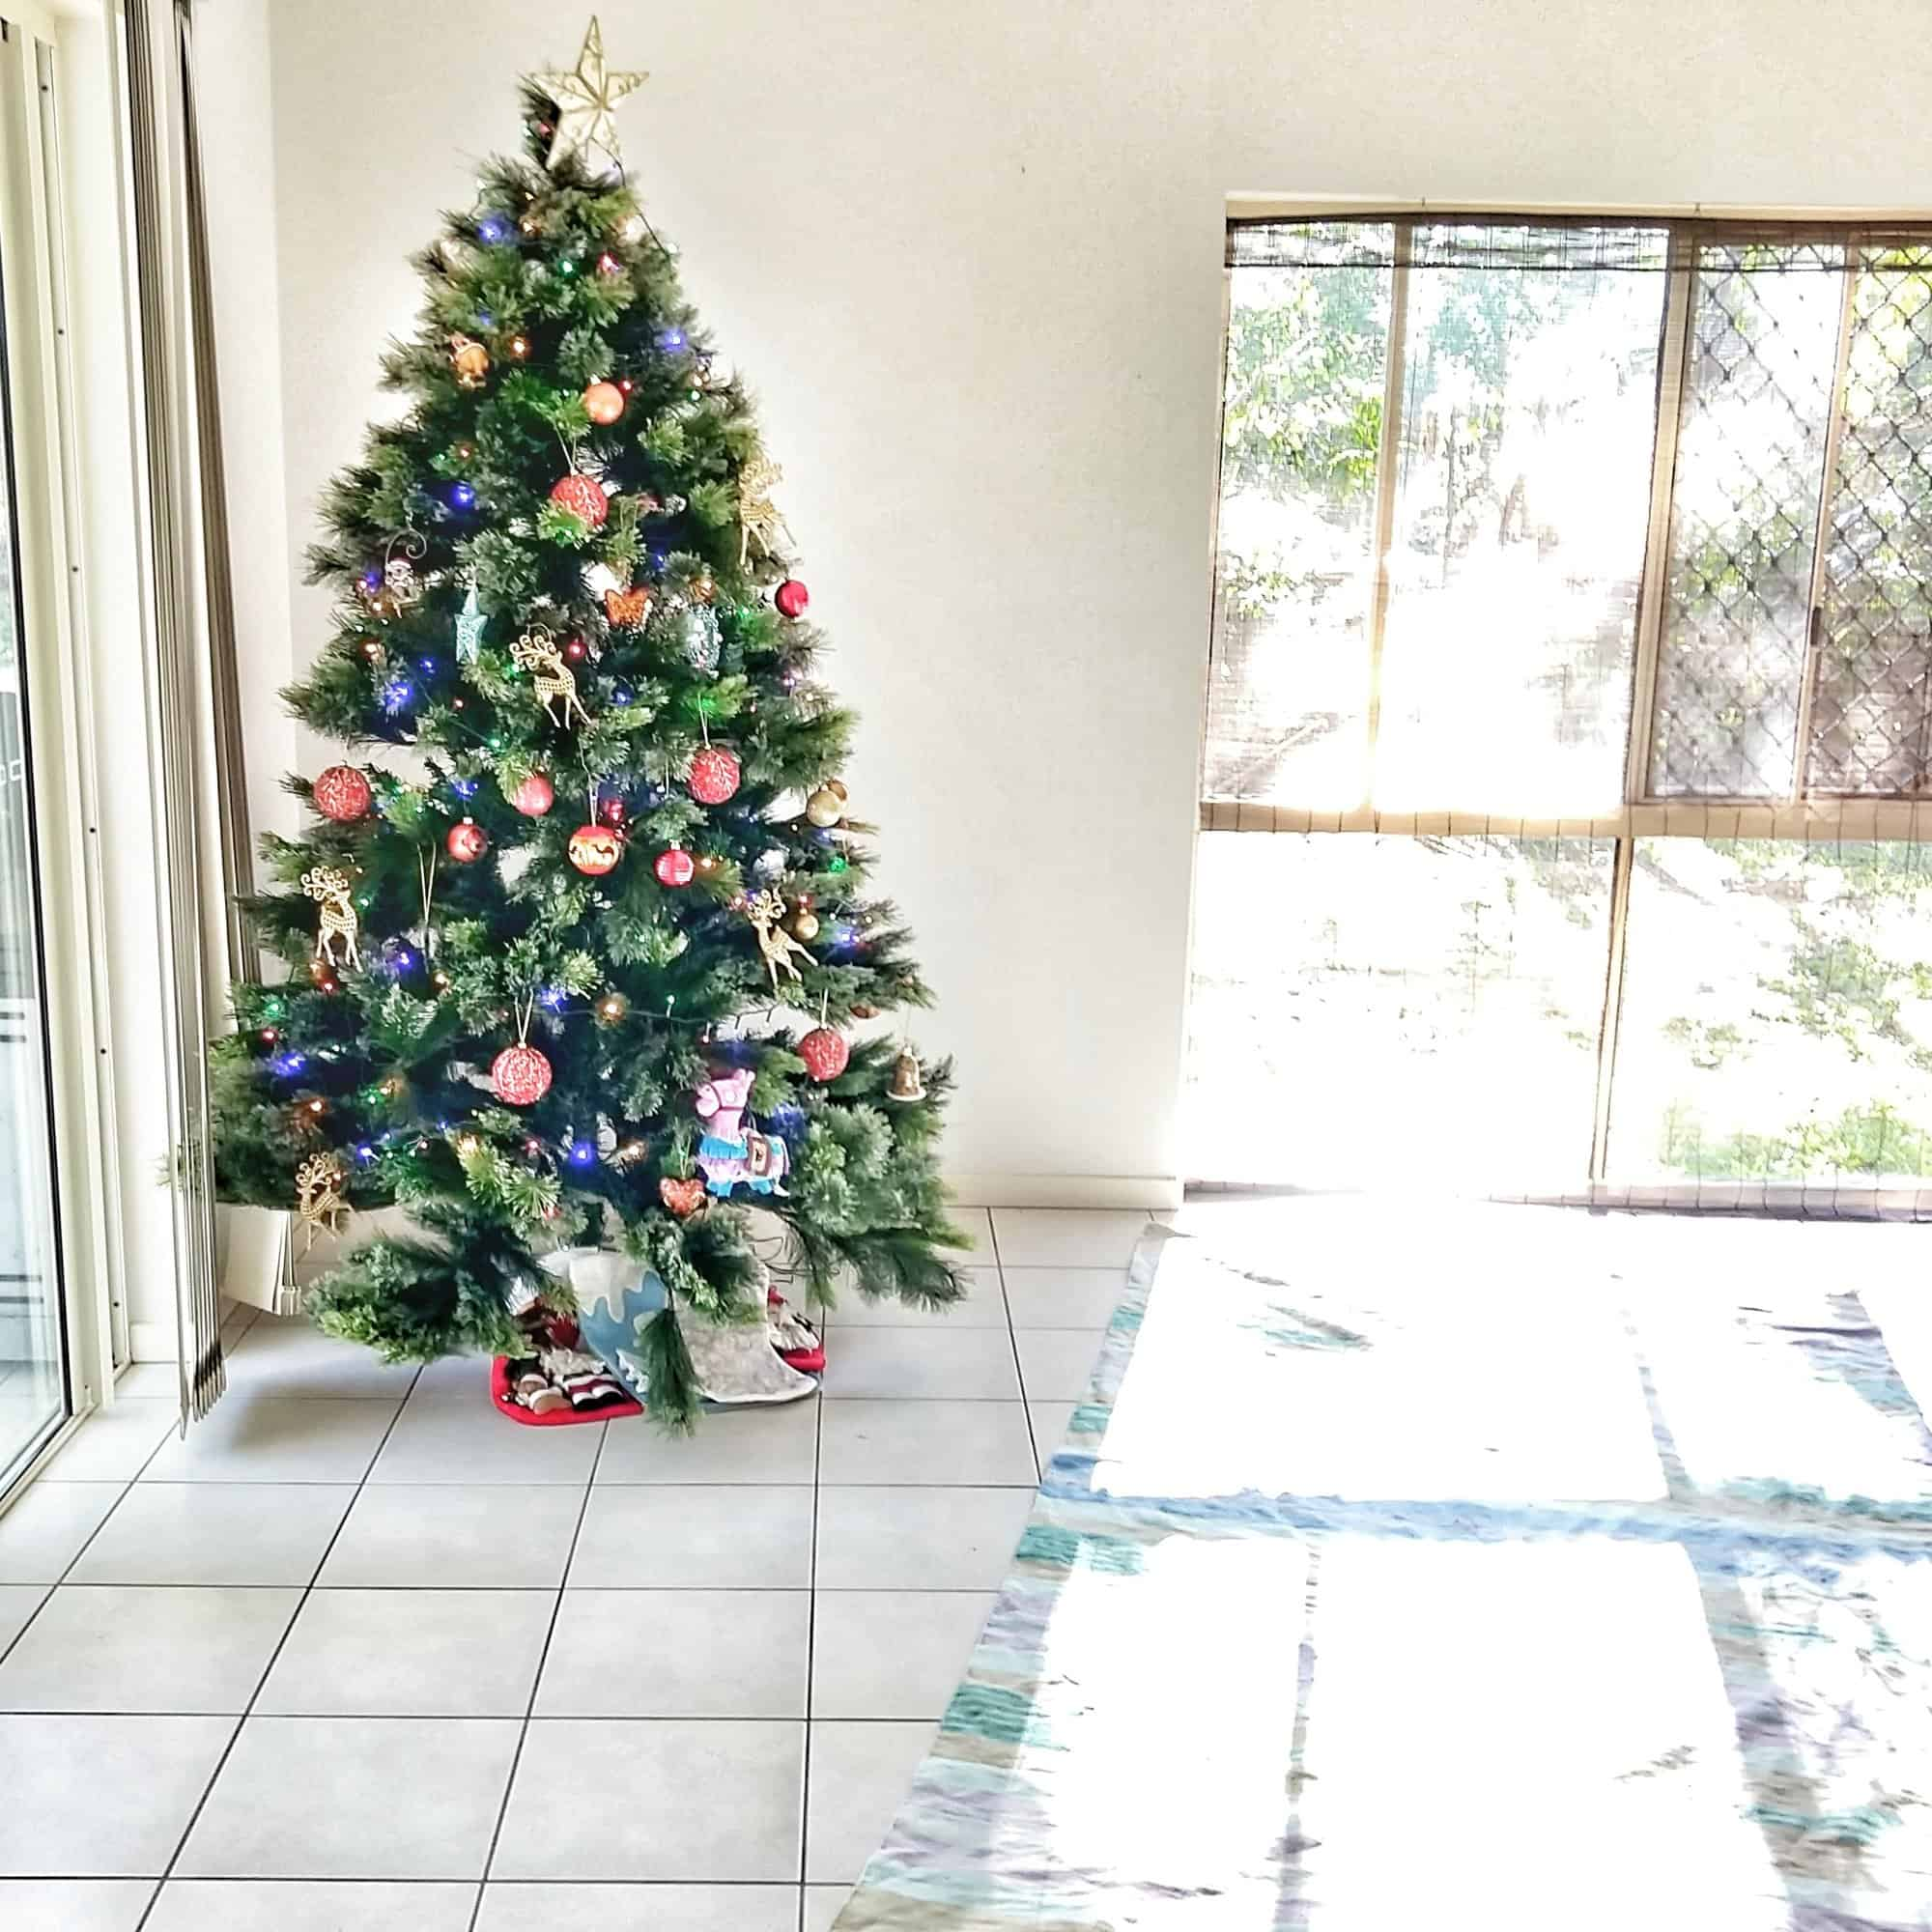 Coming home for Christmas after long term travel